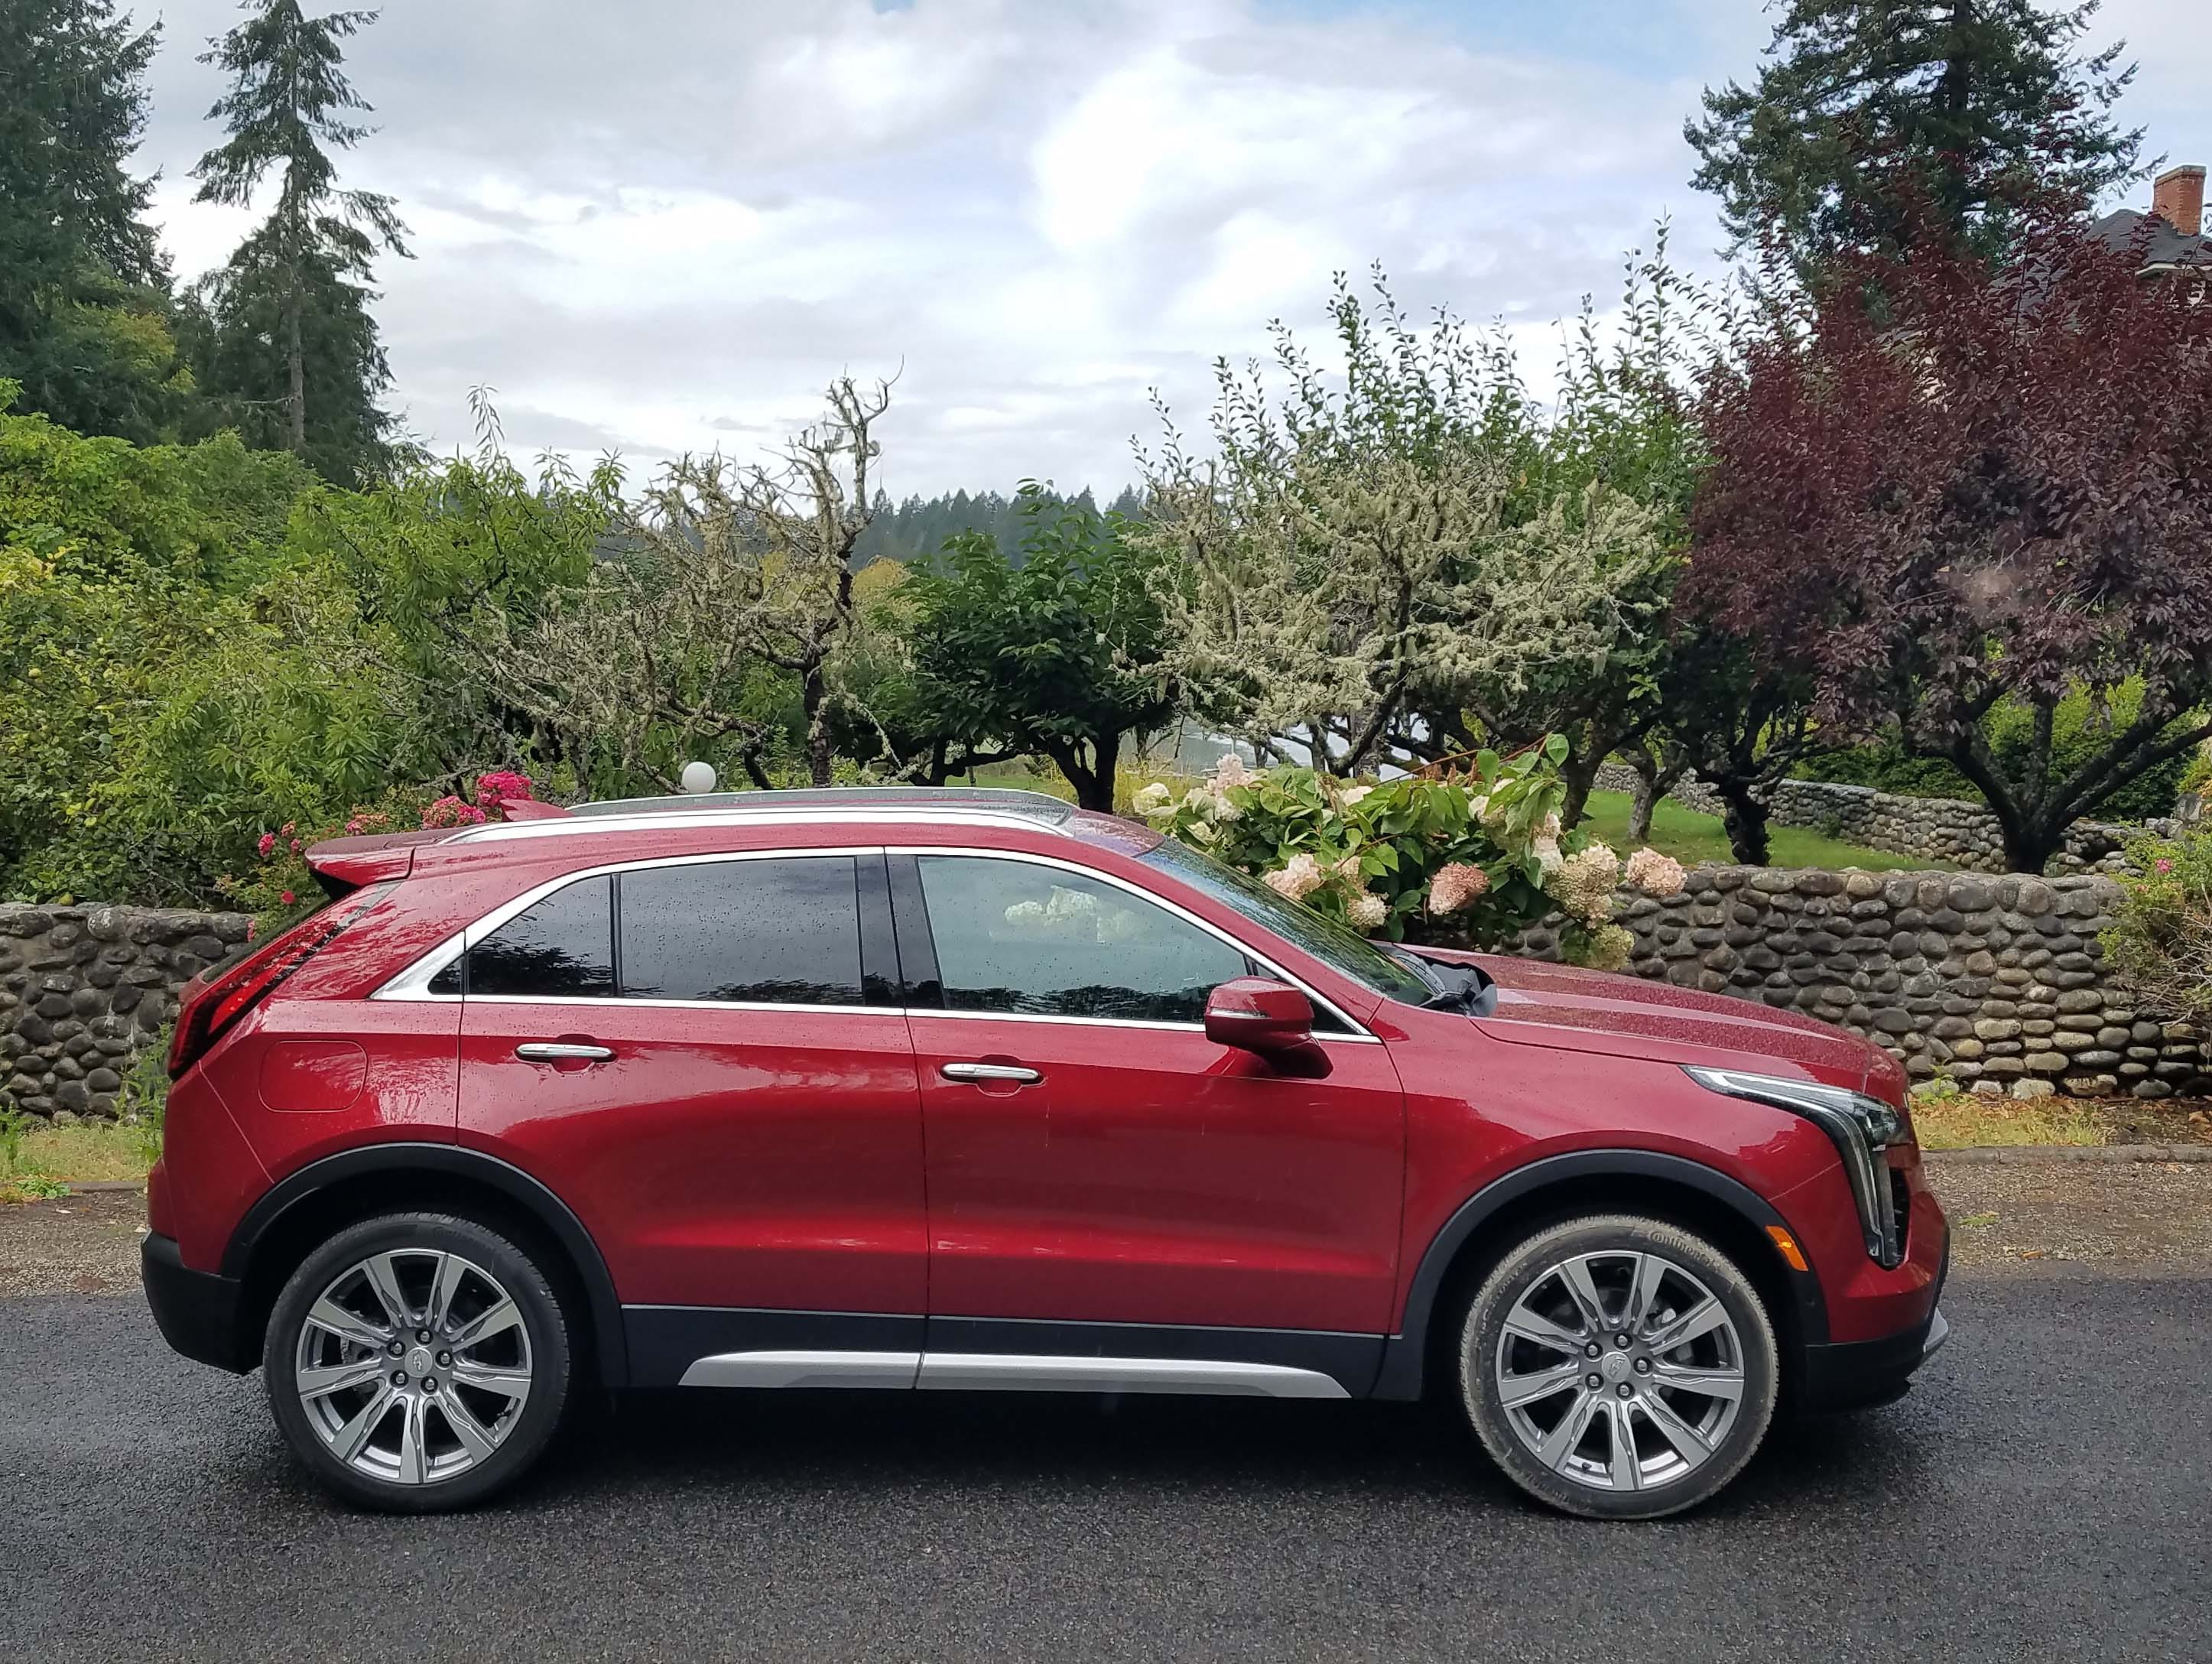 With its sculpted edges, narrow greenhouse and big, 20-inch wheels, the 2019 Cadillac XT4 looks like it rolled right off the page of a designer's drawing.